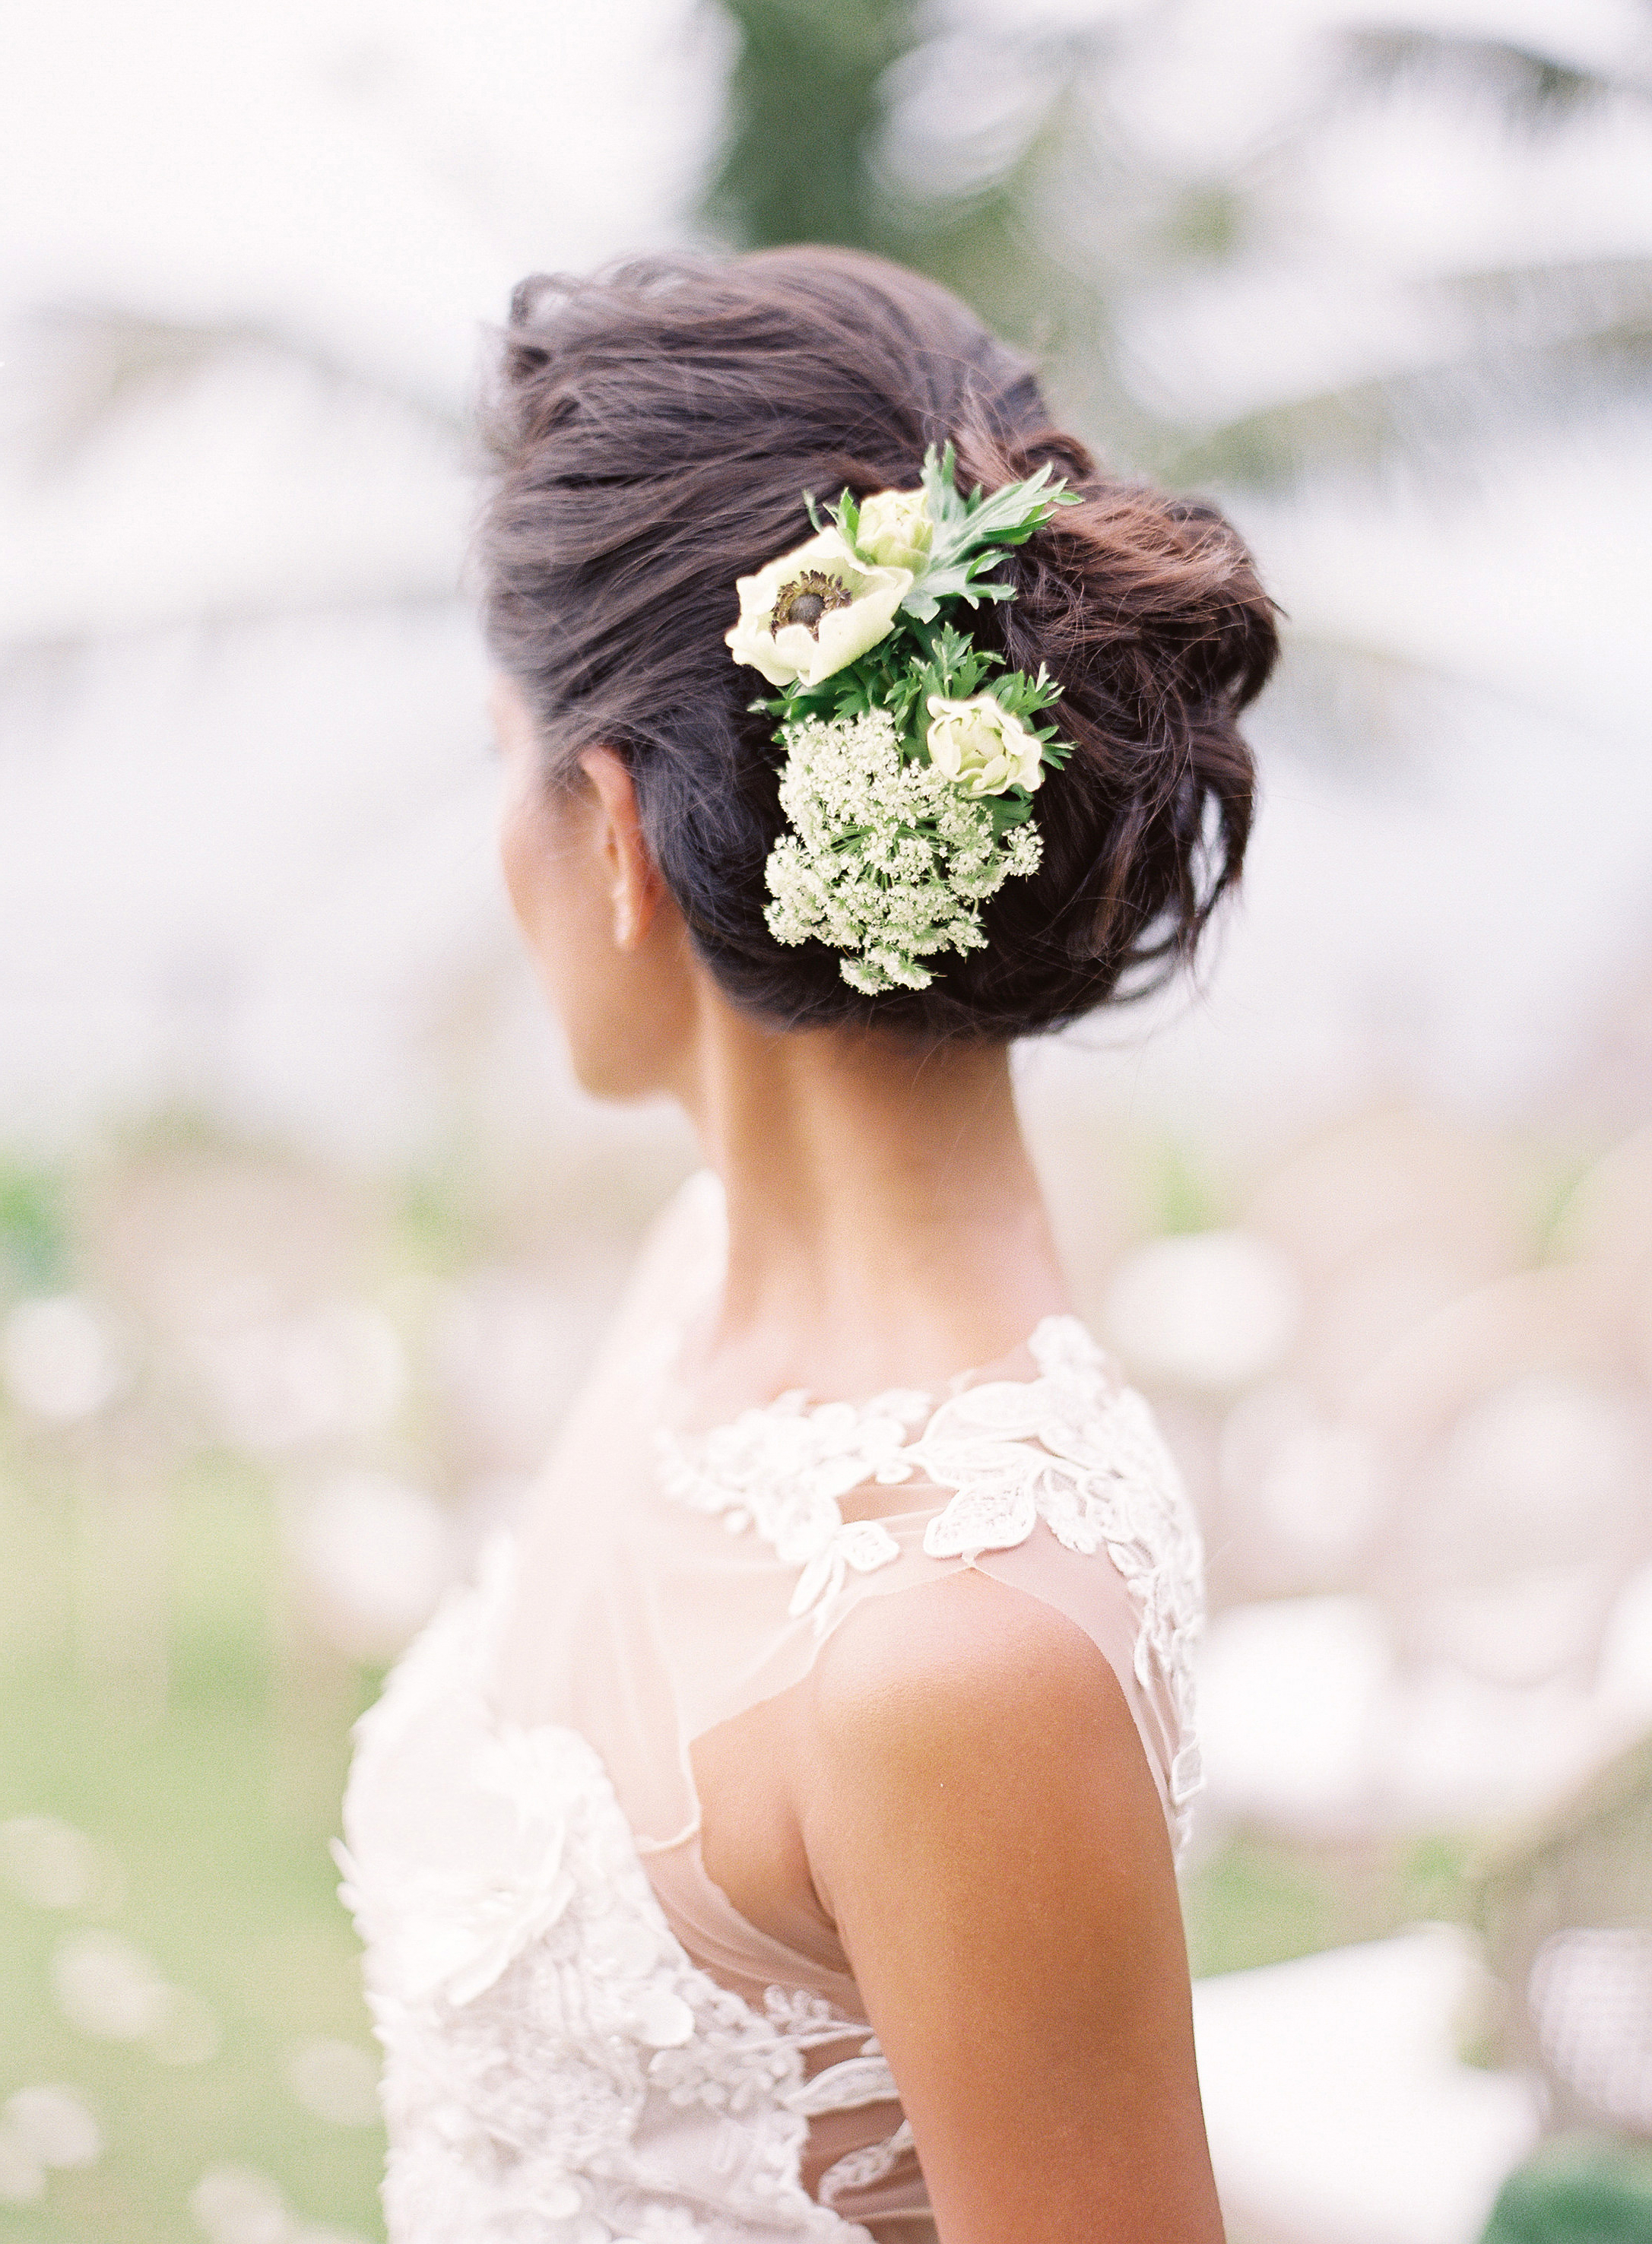 Famous Romantic Florals Updo Hairstyles Within 20 Wedding Hairstyles With Flowers (View 13 of 20)